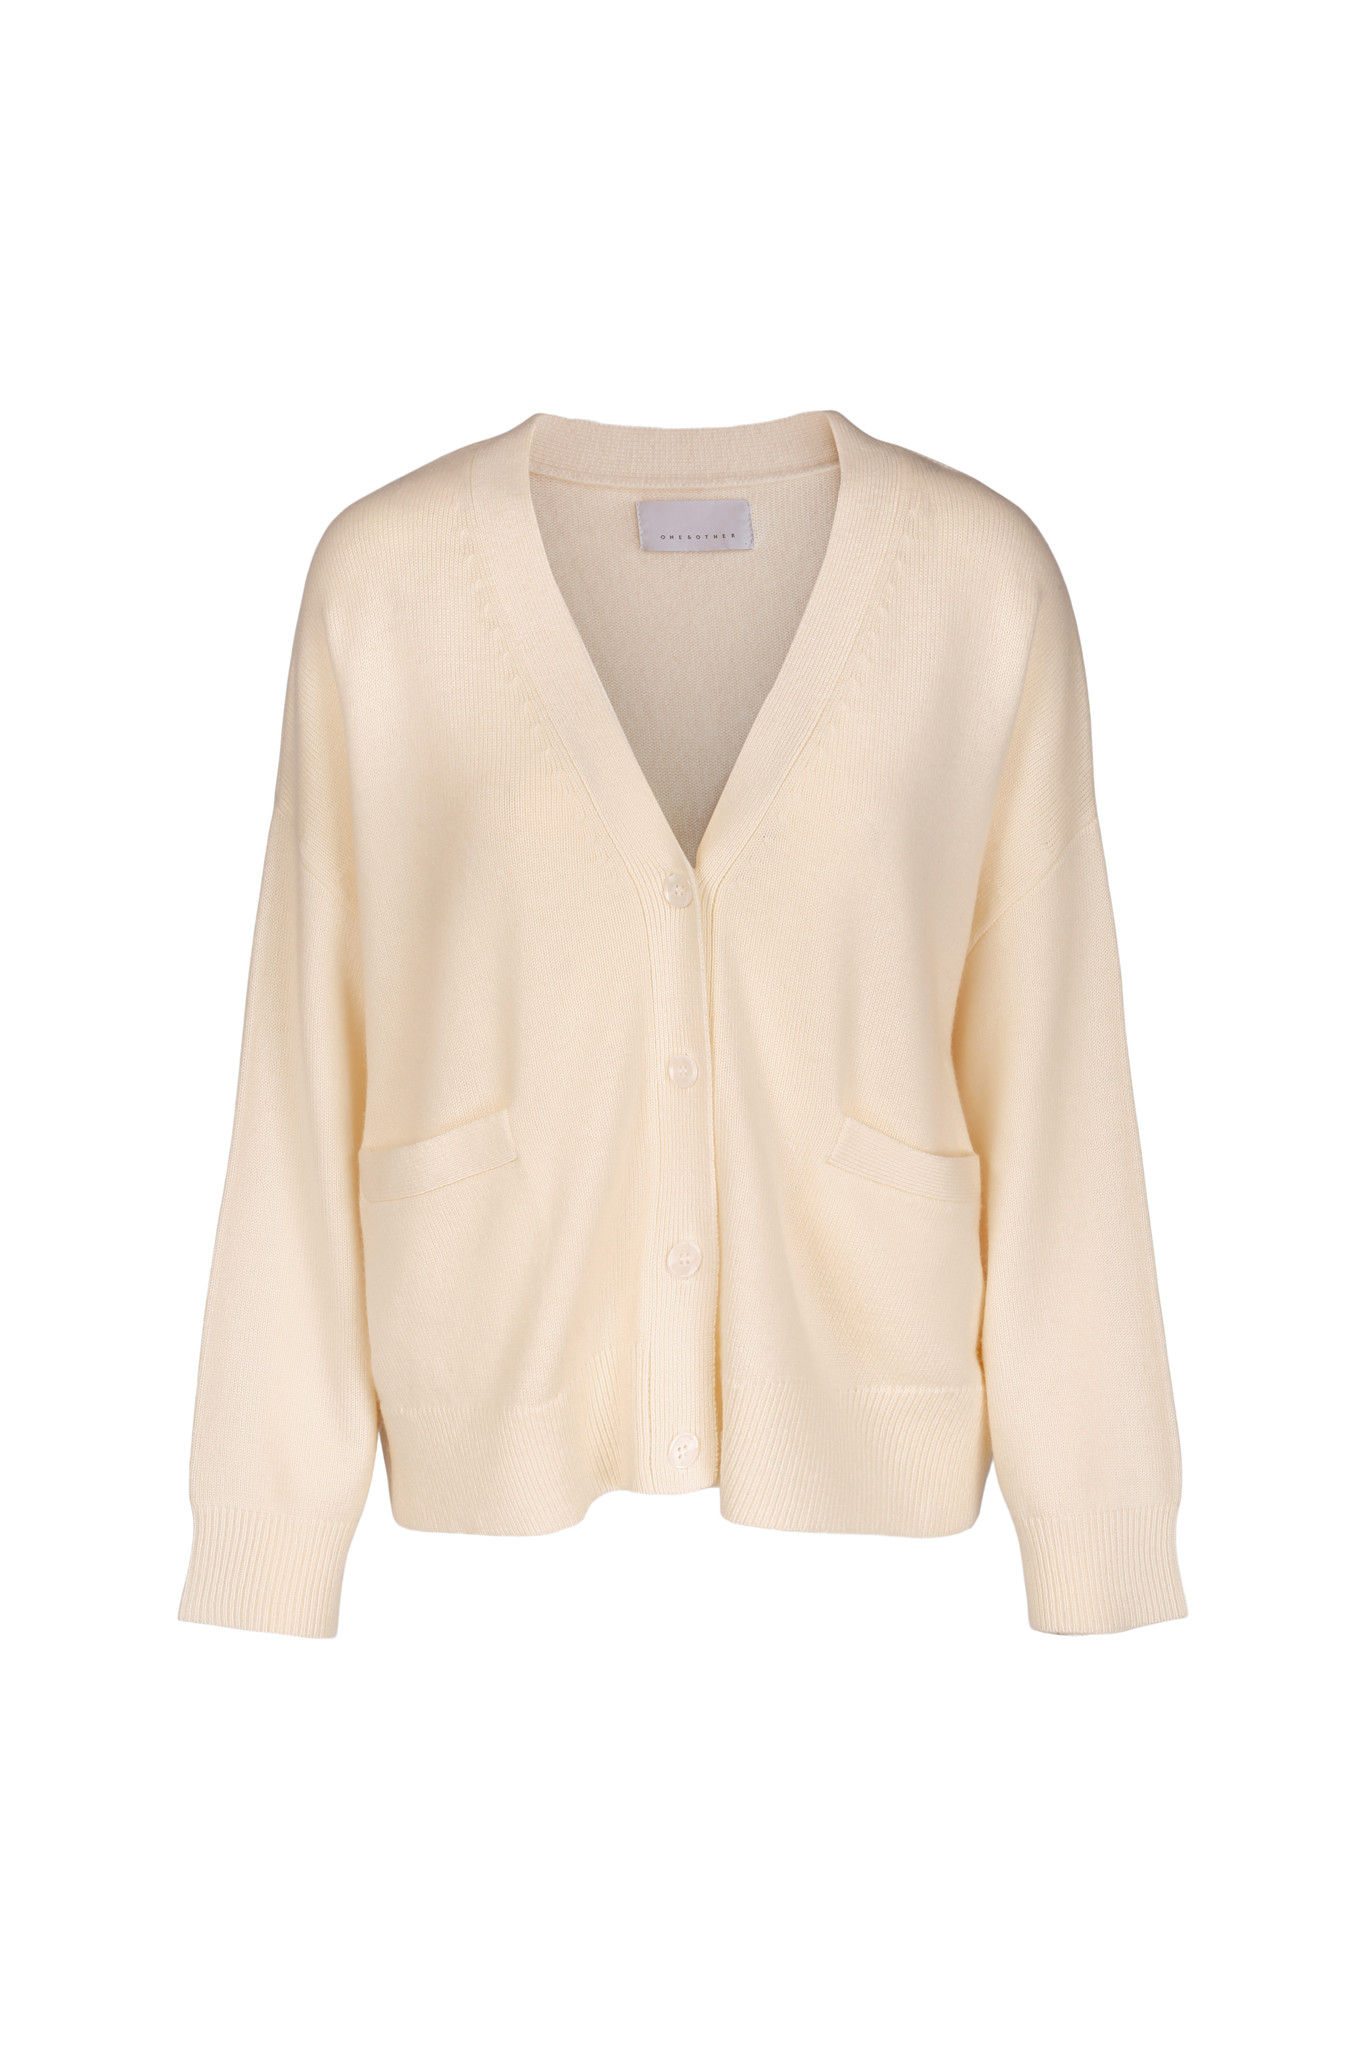 Moses Cardigan - Off White-1